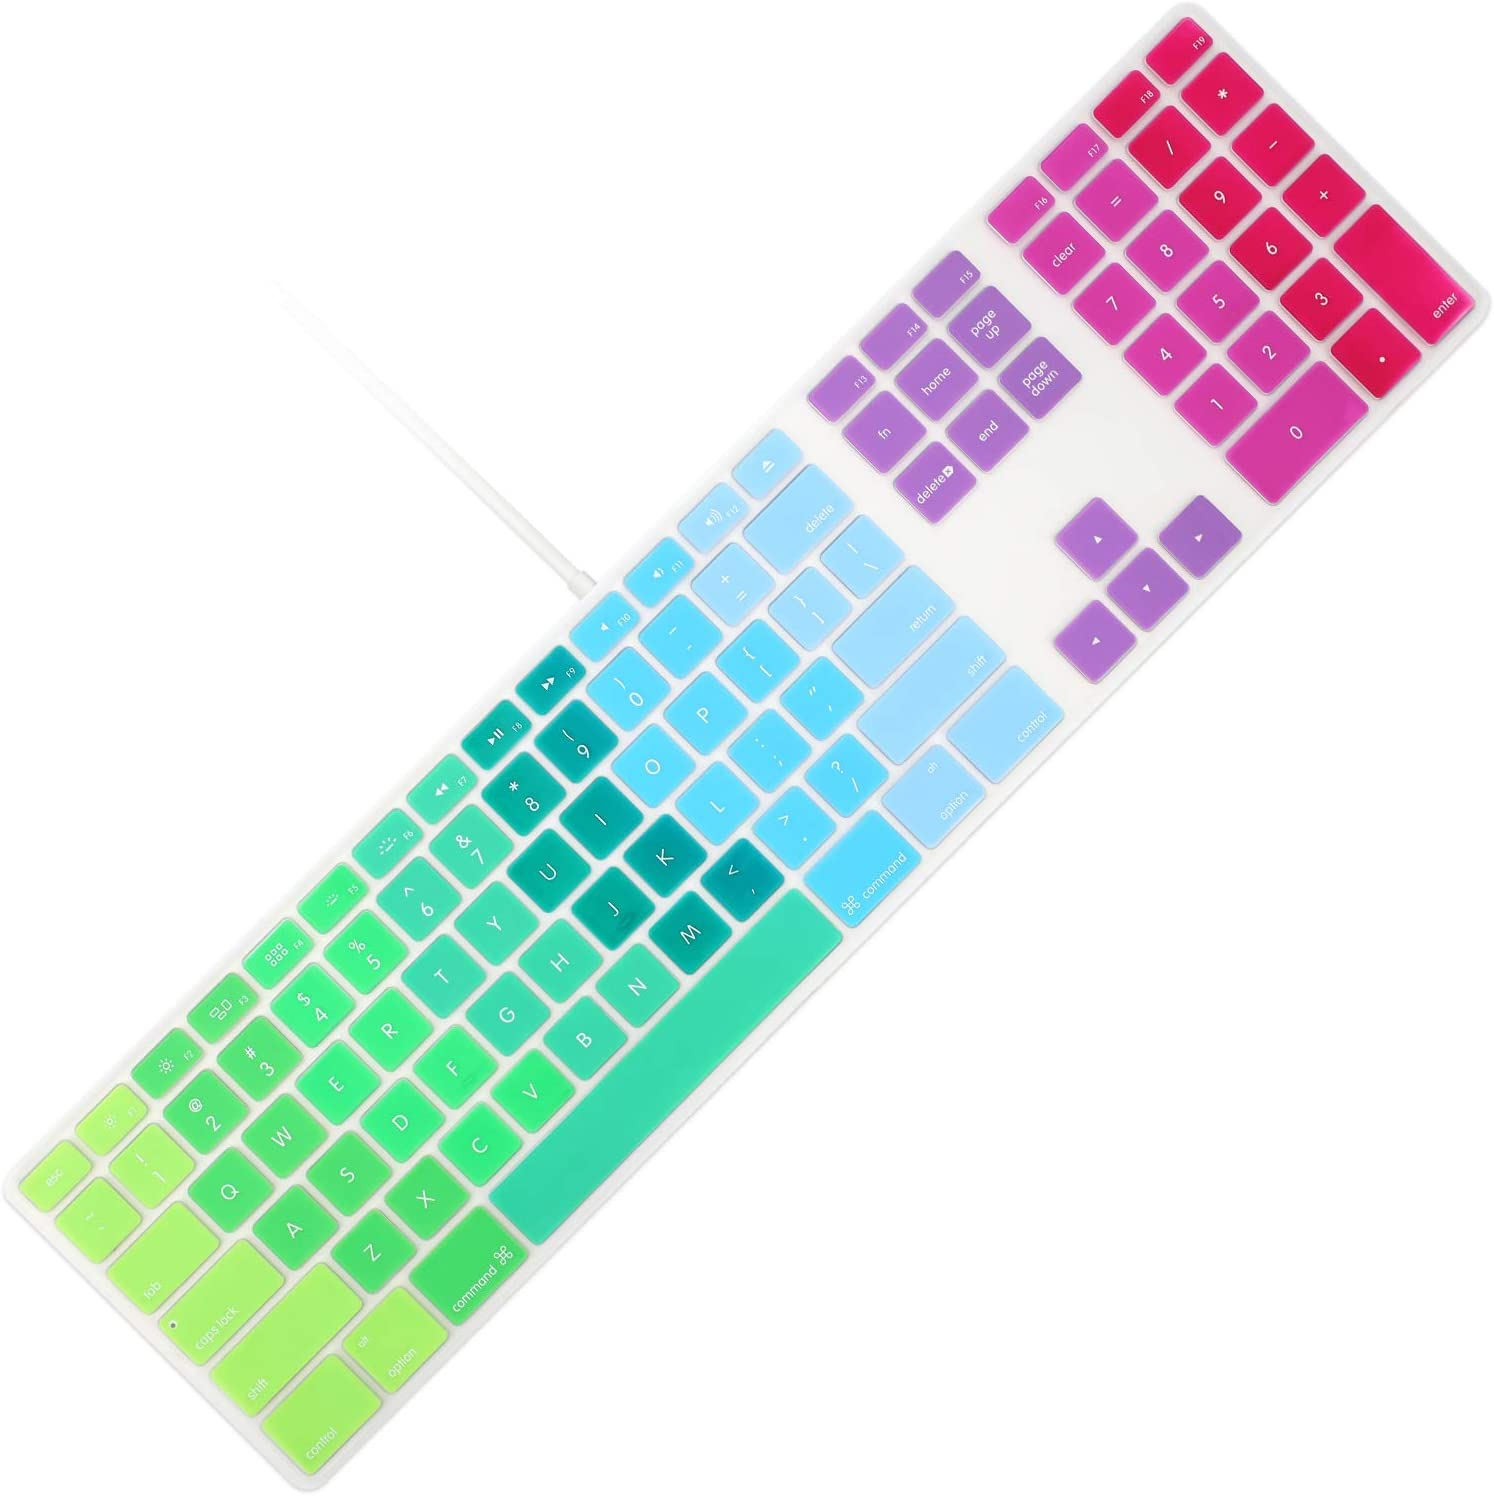 Allinside Rainbow Keyboard Cover for iMac Wired USB Keyboard